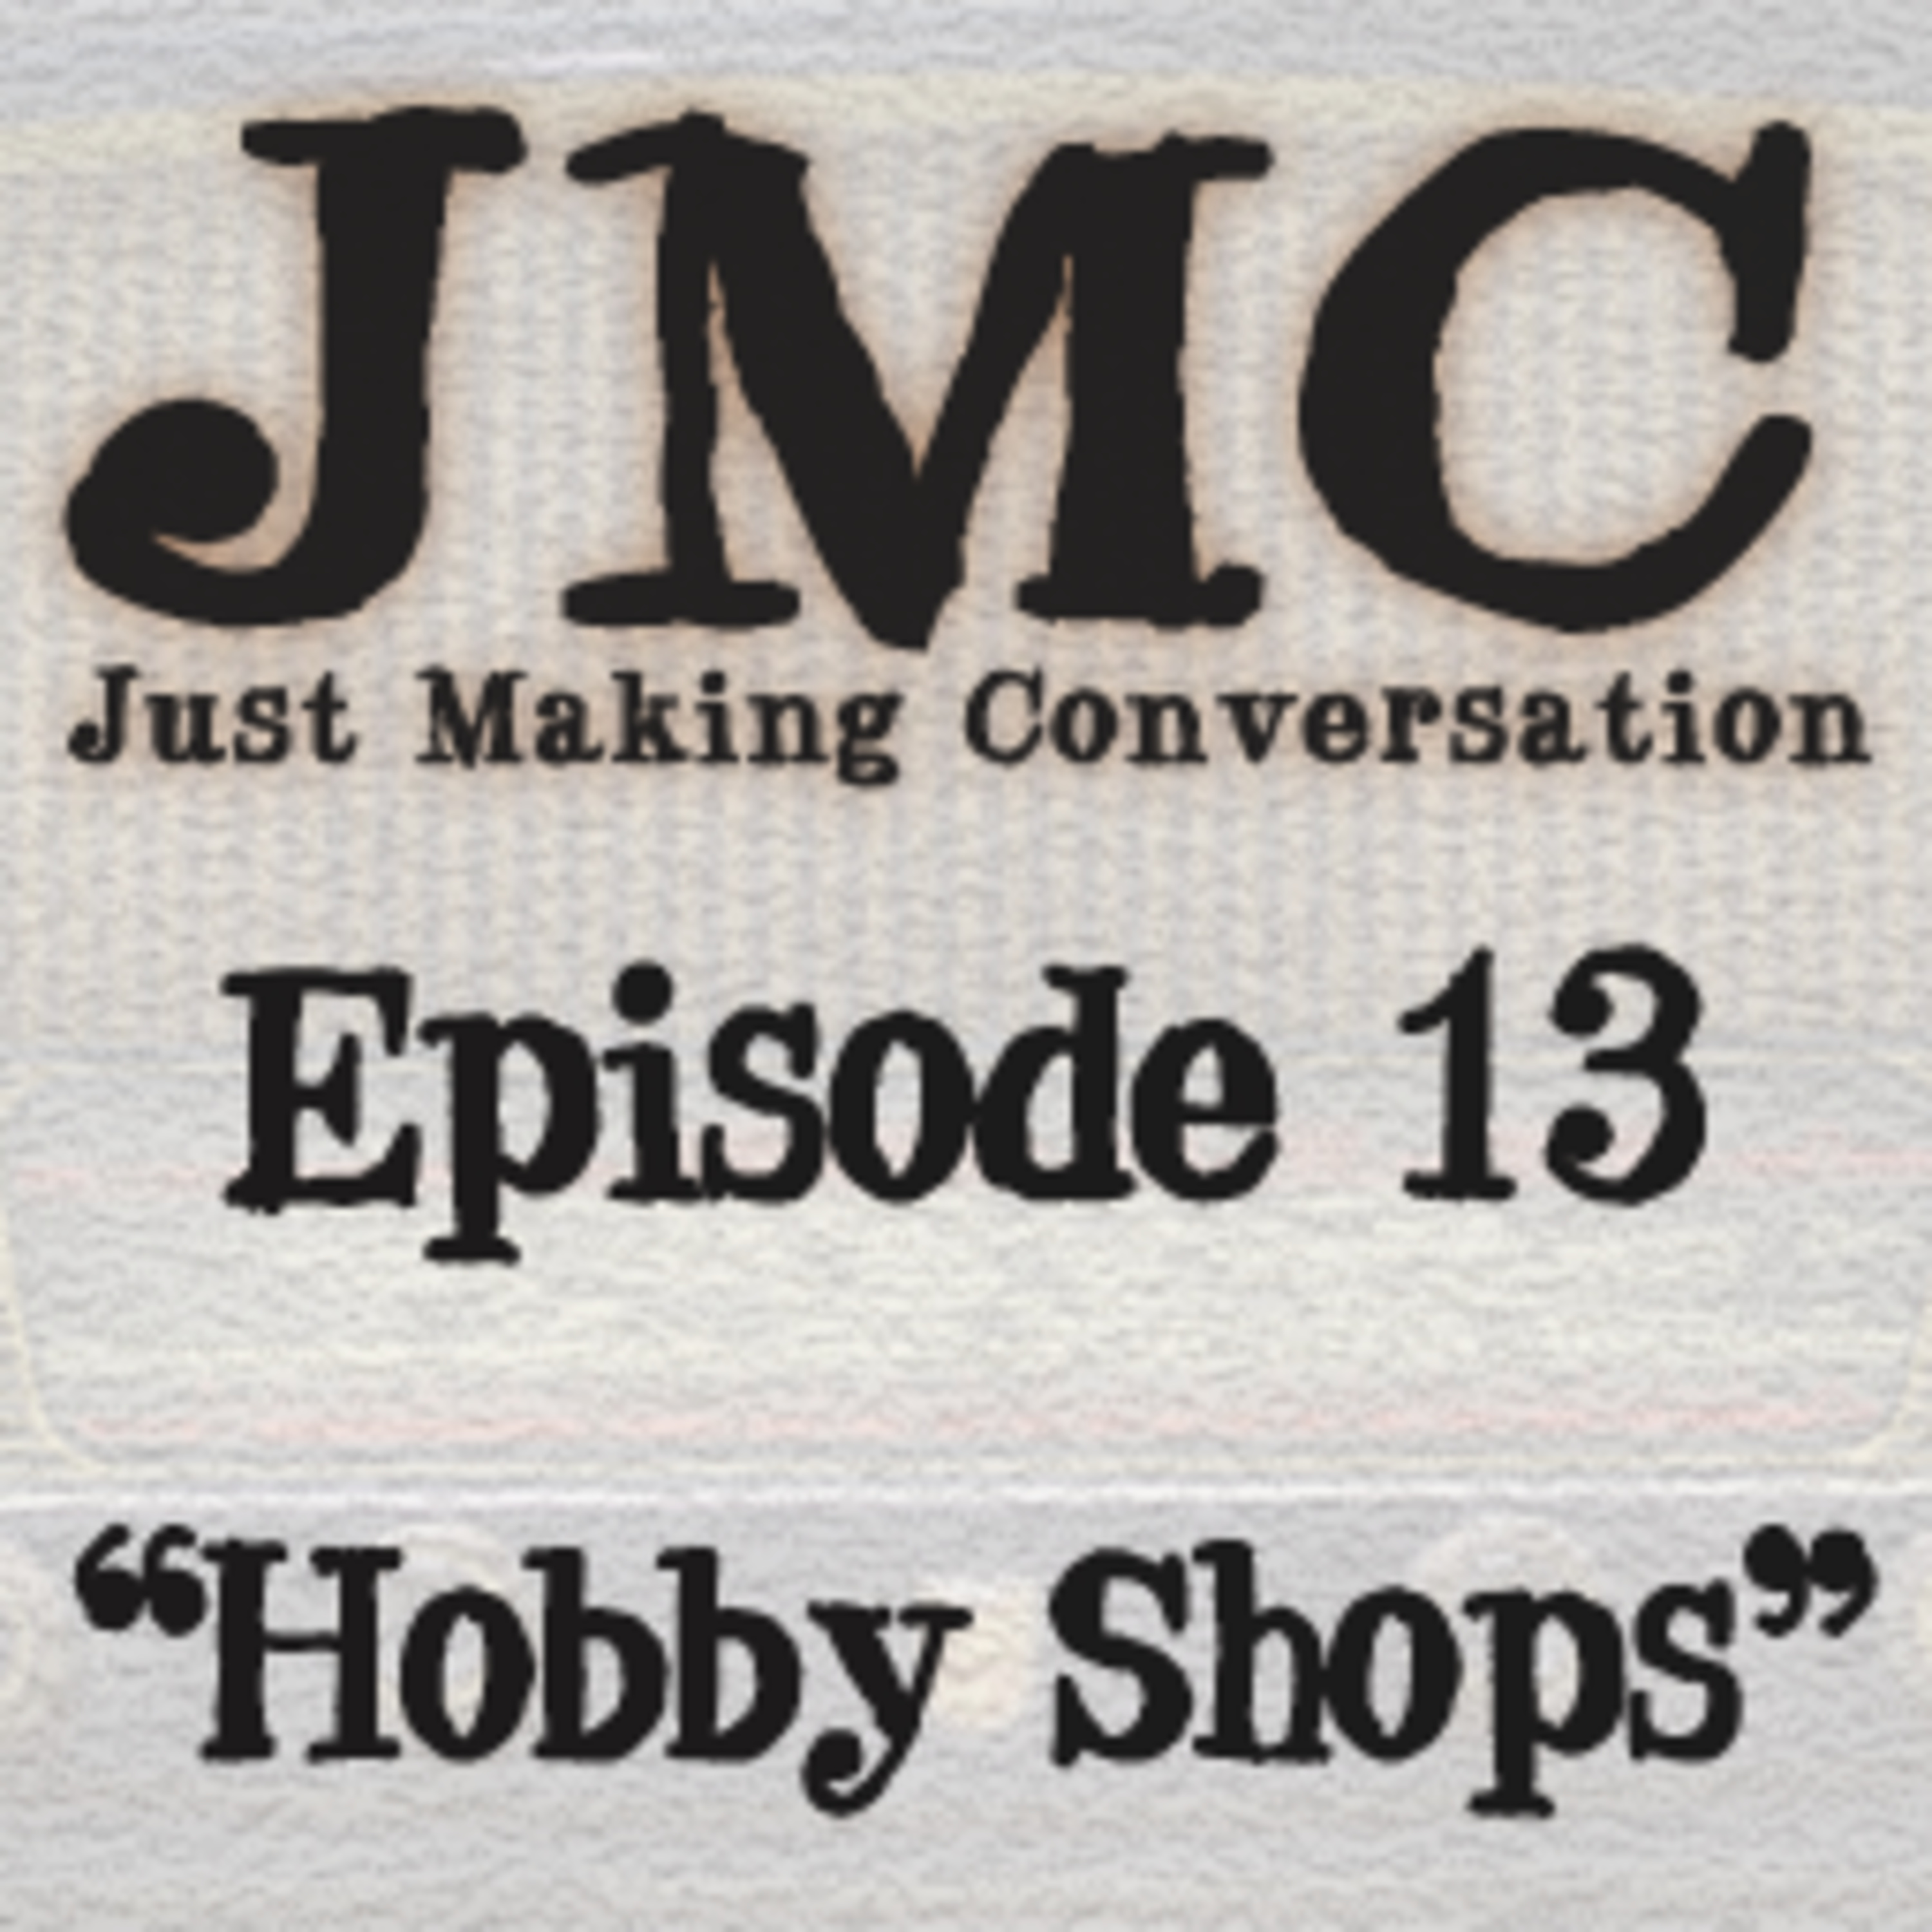 Hobby Shops. Where do you go to get your next fix of injection moulded plastic? Do you lurk on the internet or in your local hobby shop aisles.